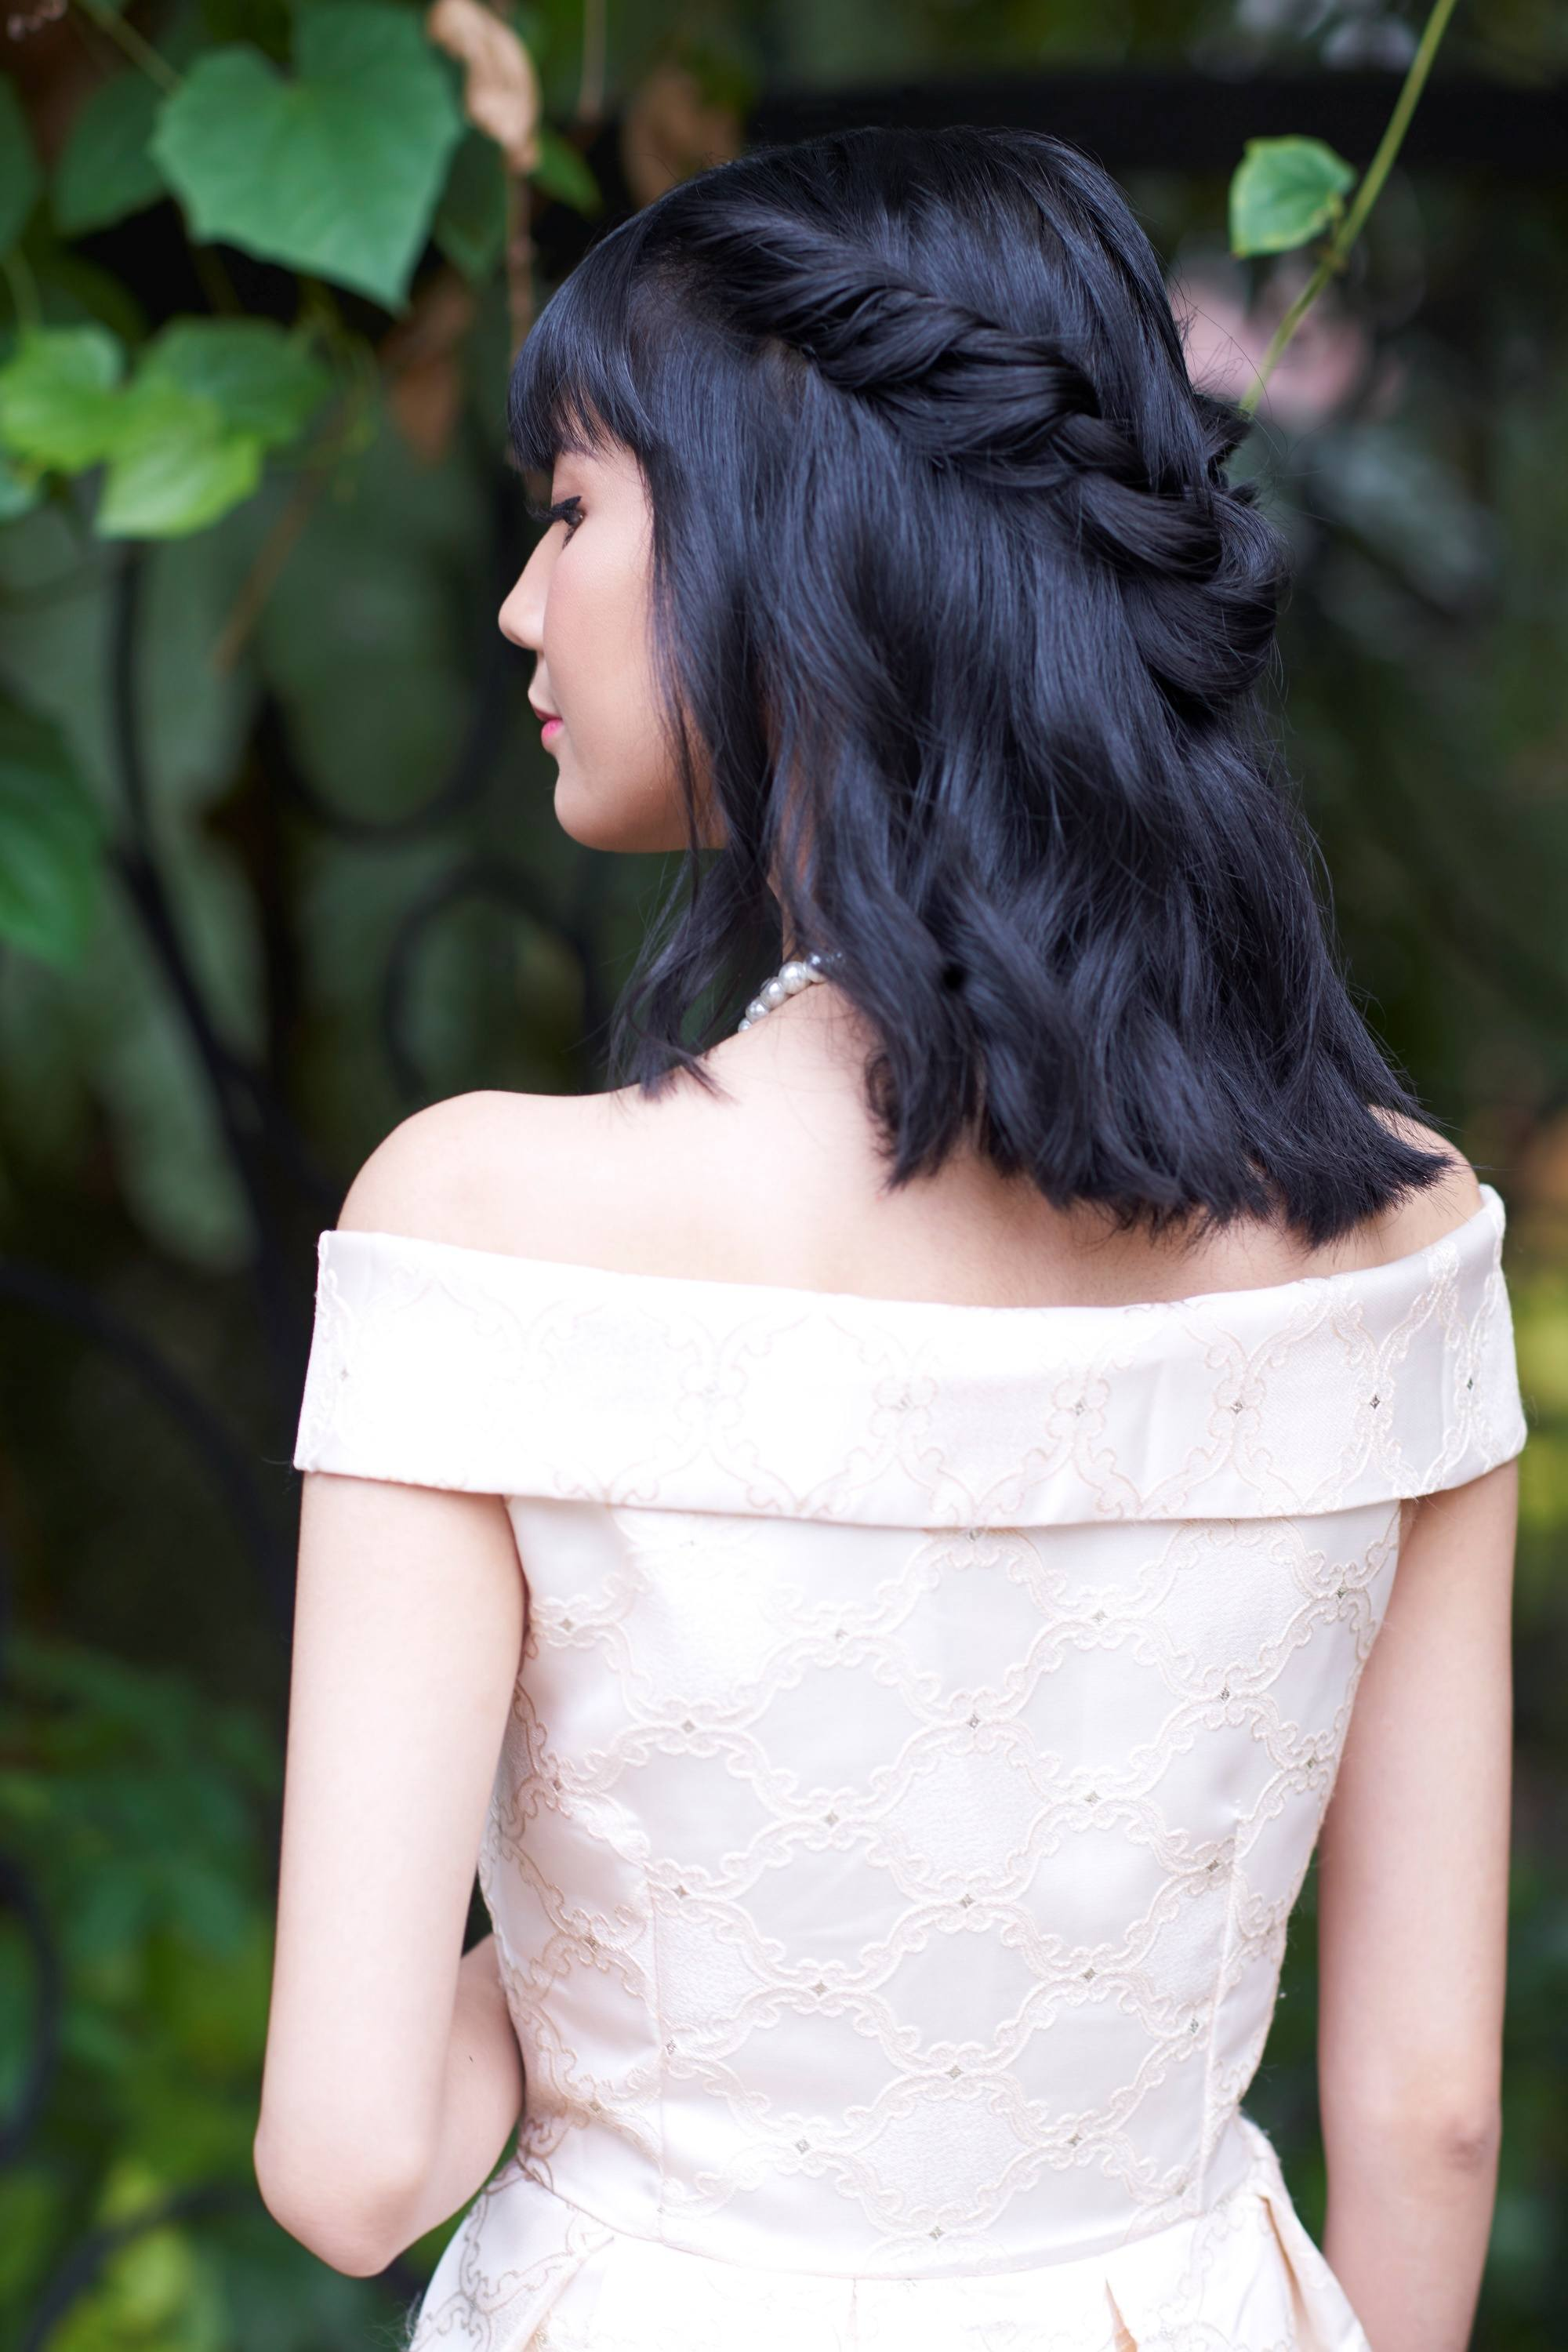 Sansa Stark Braid: Asian woman with black hair in half updo standing outdoors